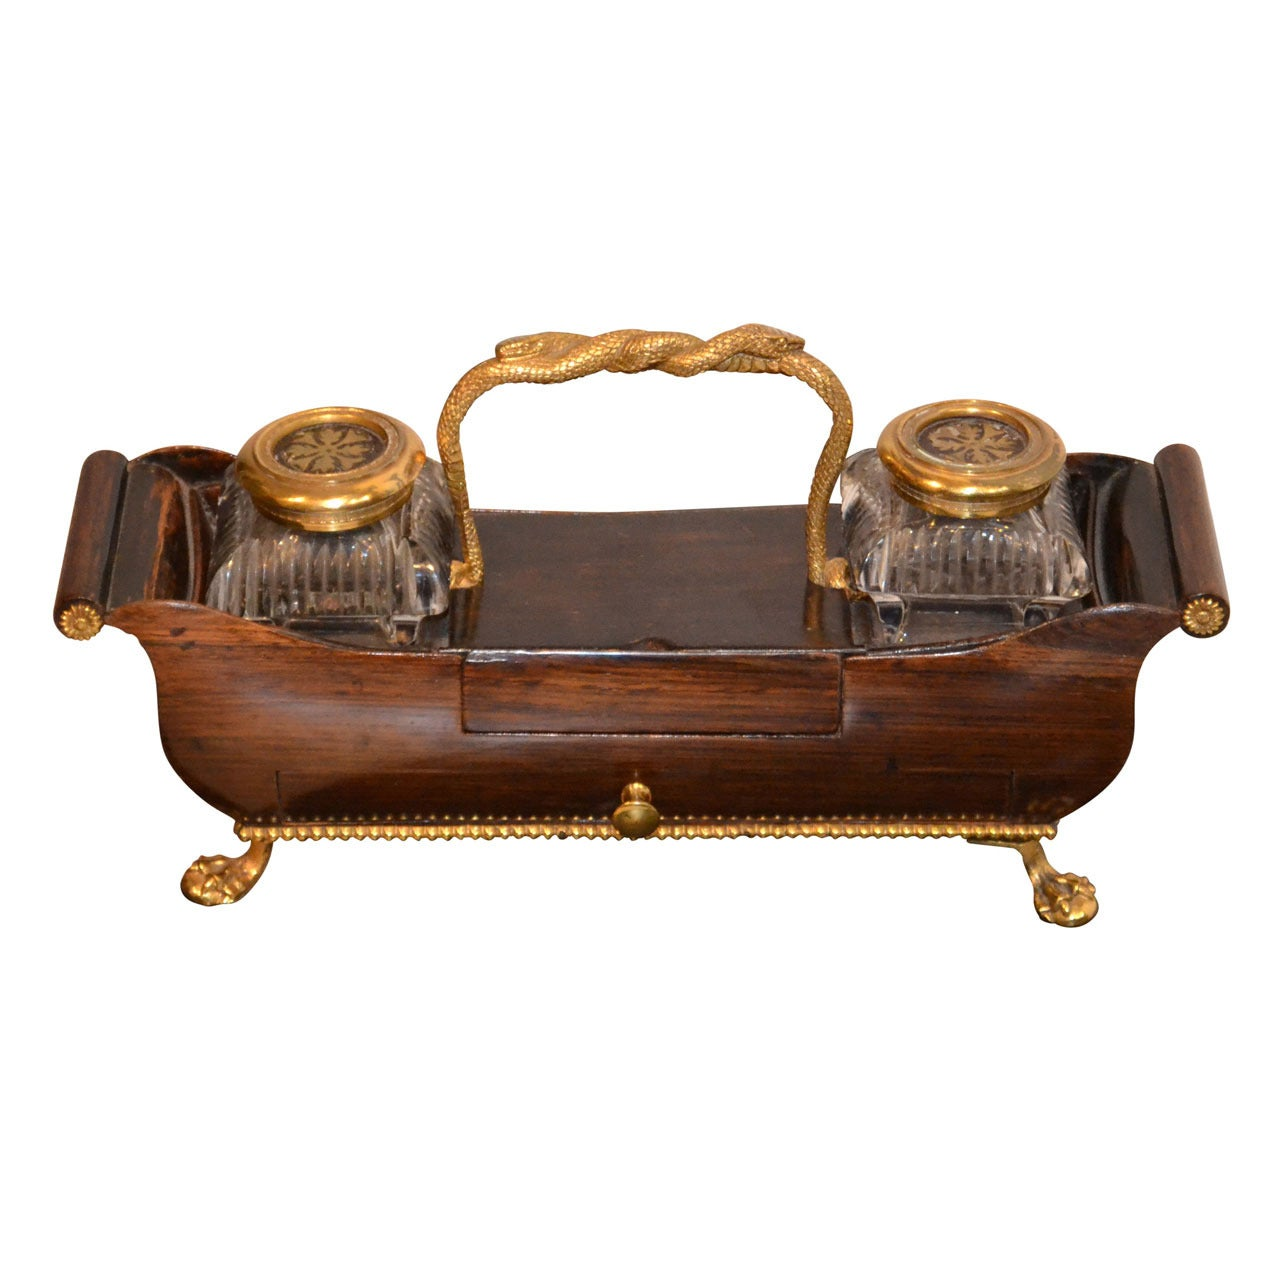 Early 19th Century French Ormolu-Gilded Inkwell